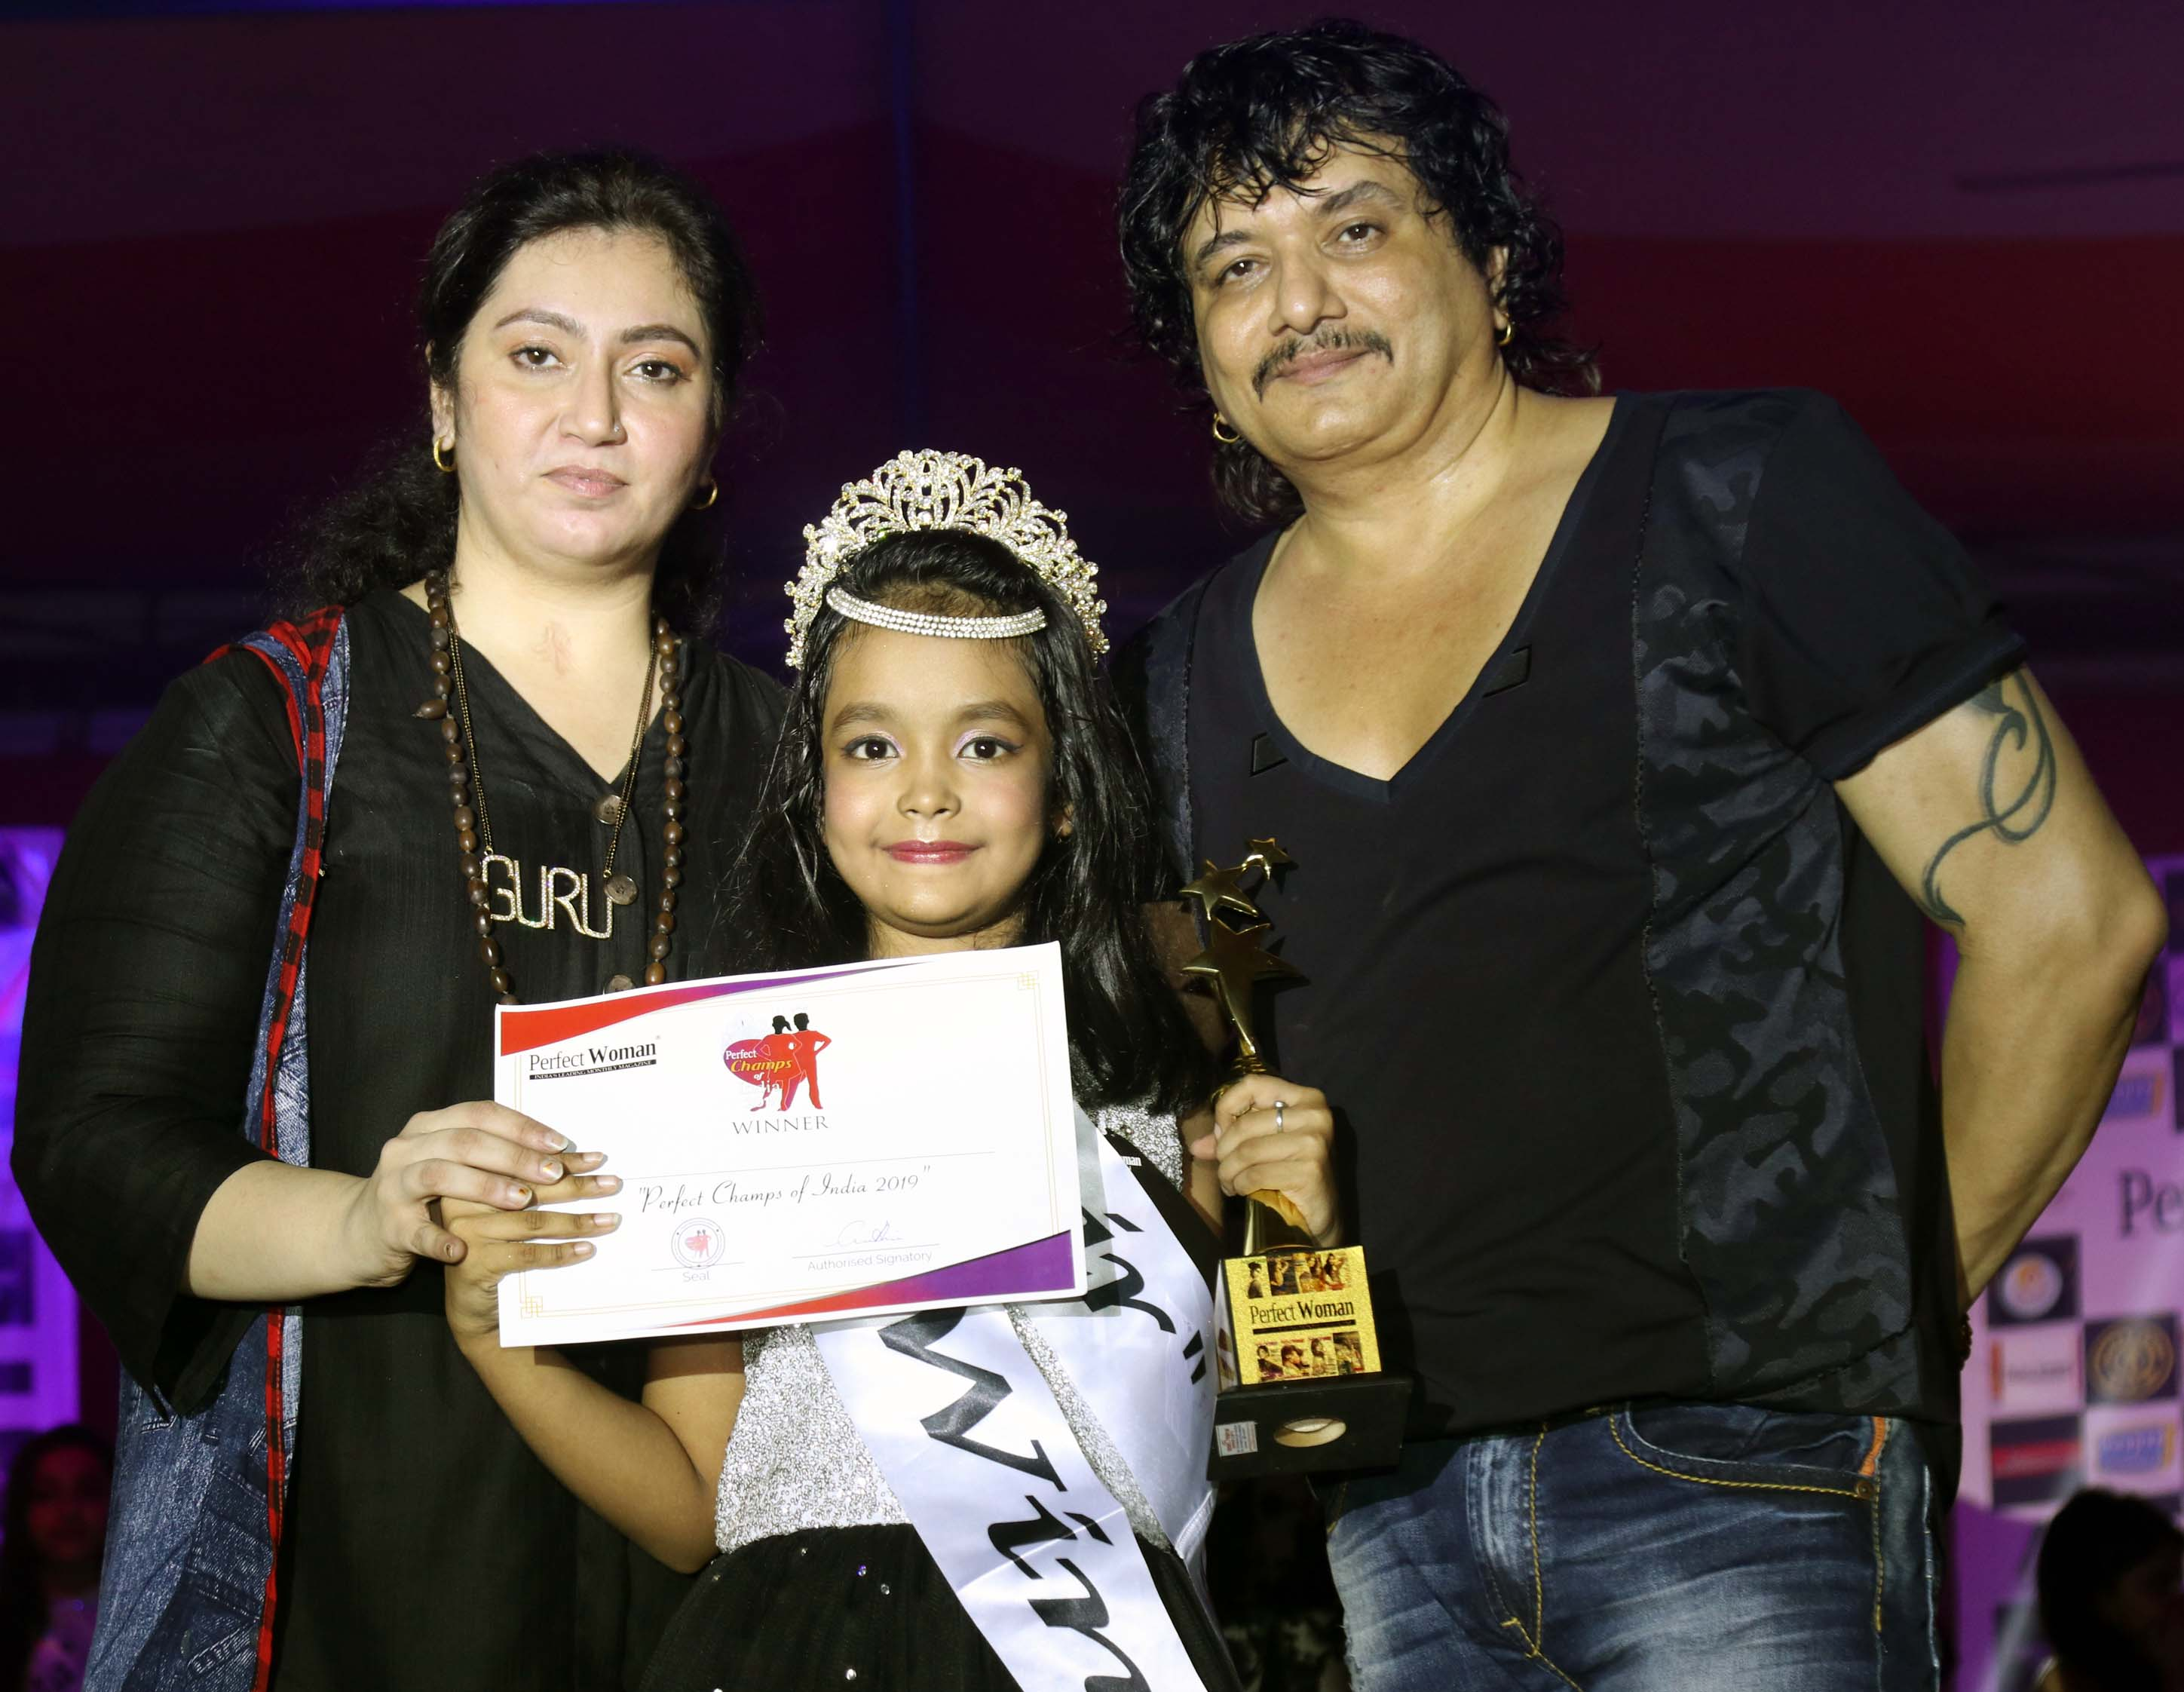 Annika Nandy and Prabuddh Hiwale became 1st Perfect Champs of India organised by Gurubhai Thakkar of Perfect Women.